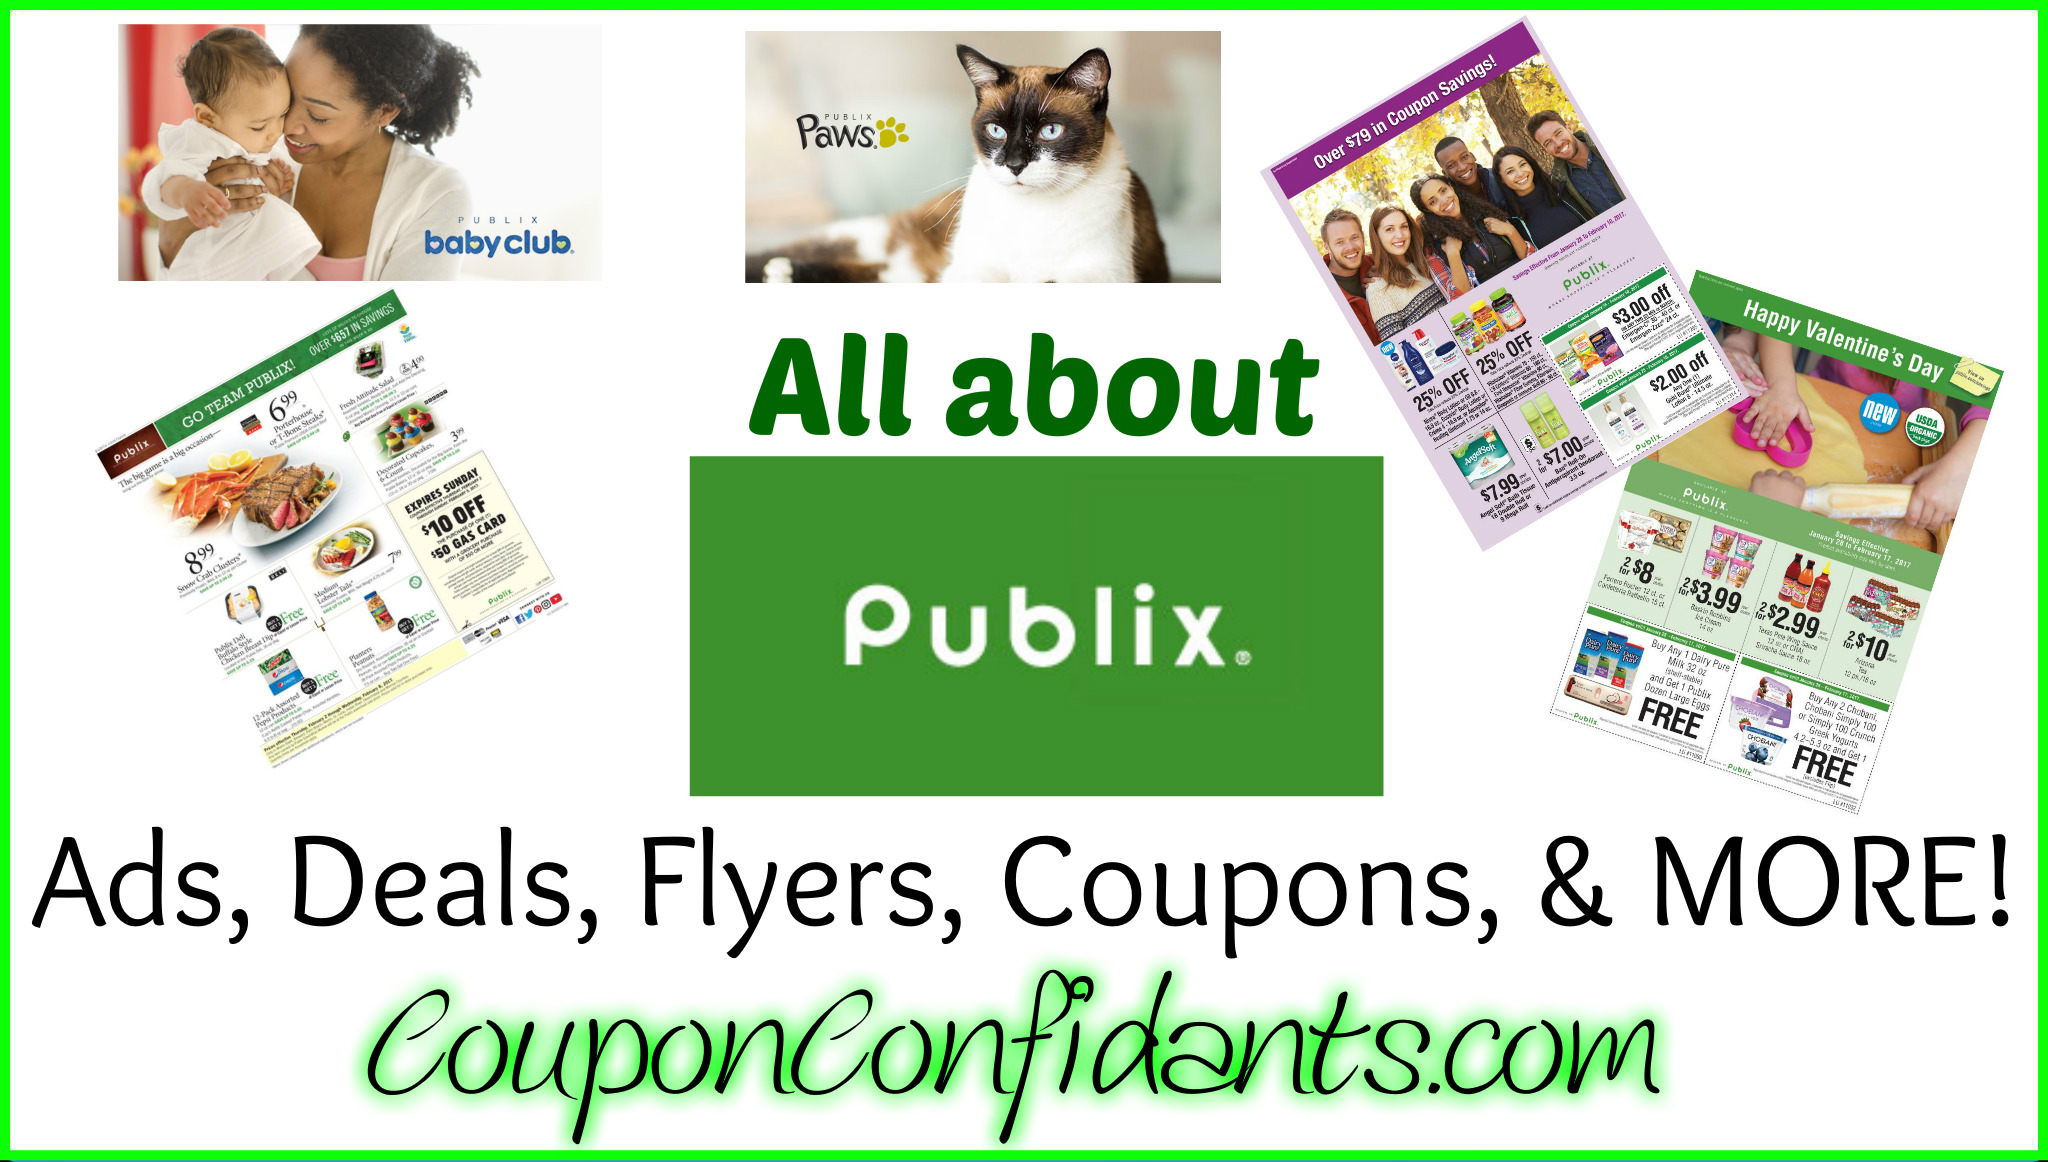 All Publix Deals in one spot!